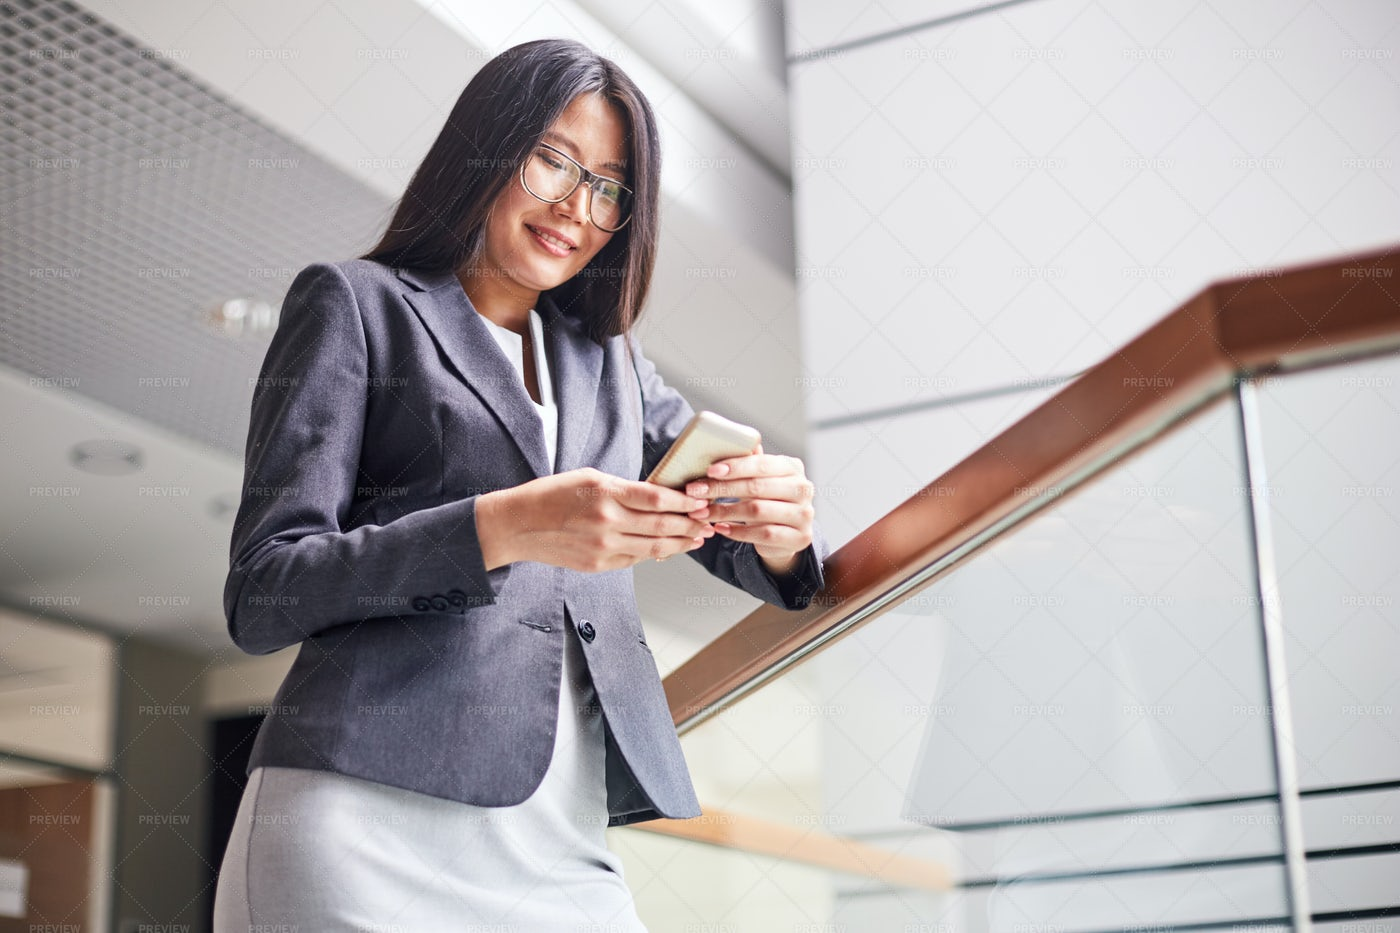 Texting With Friend On Smartphone: Stock Photos